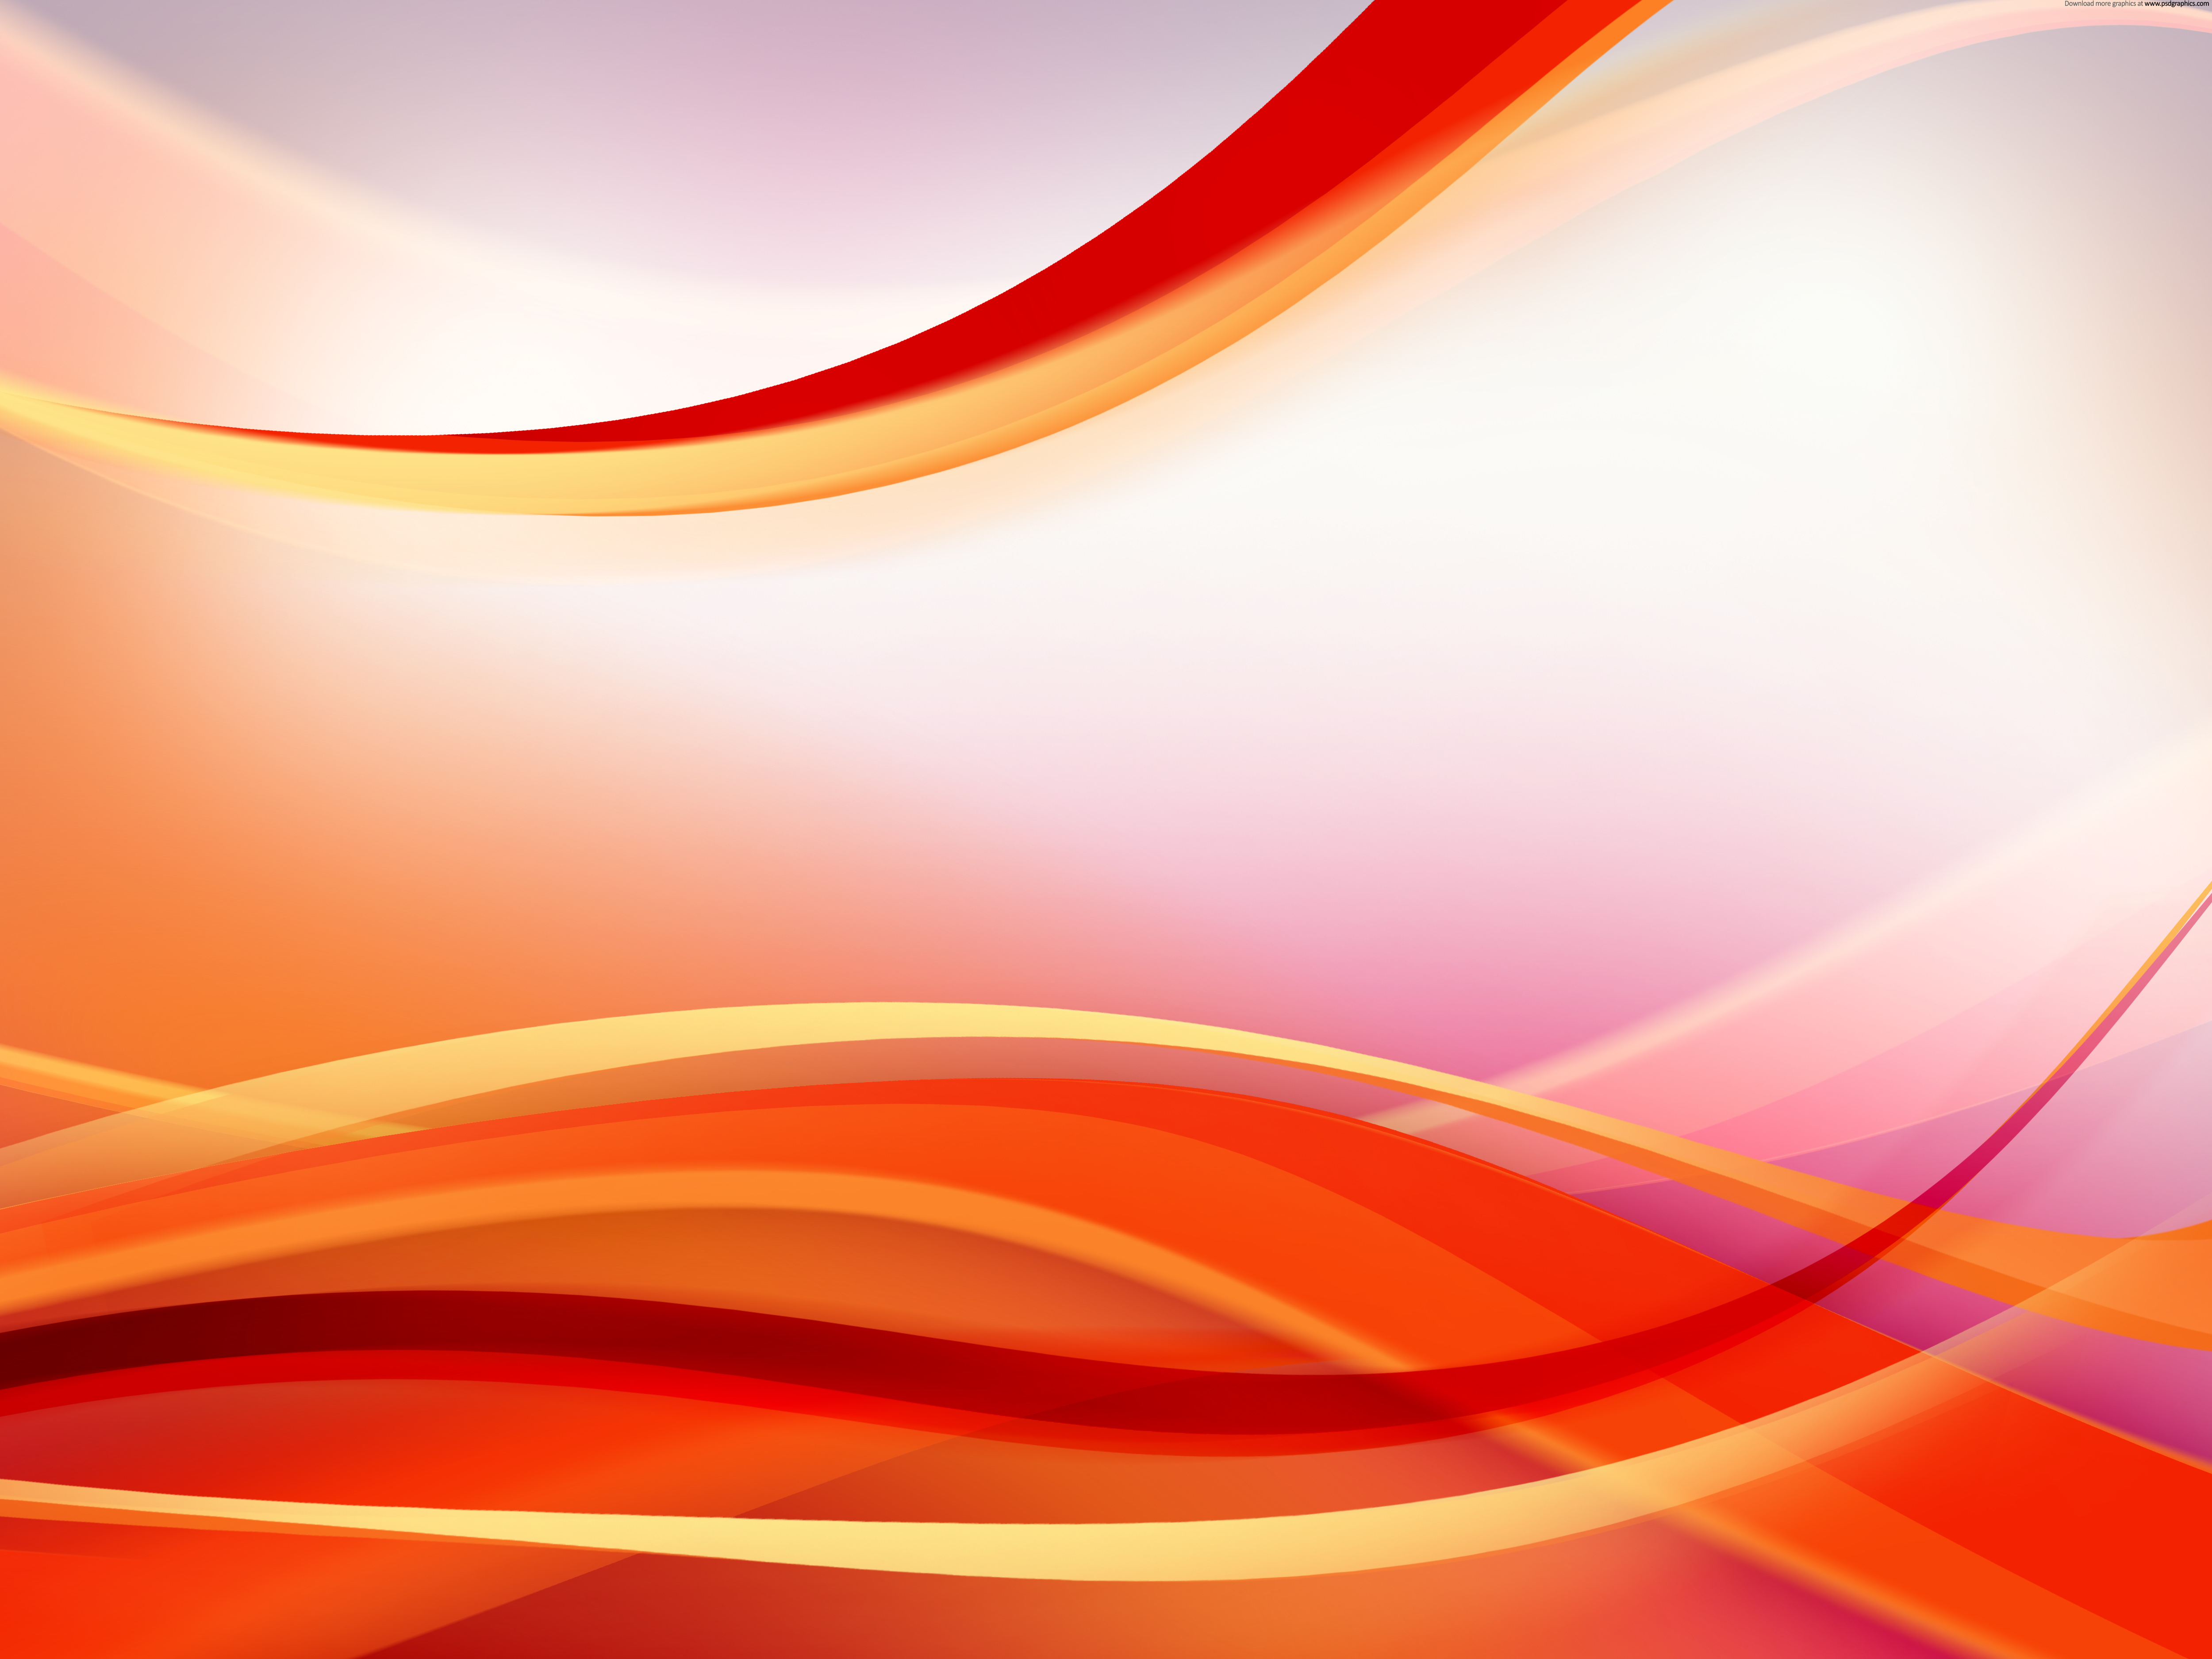 Red Flowing Background